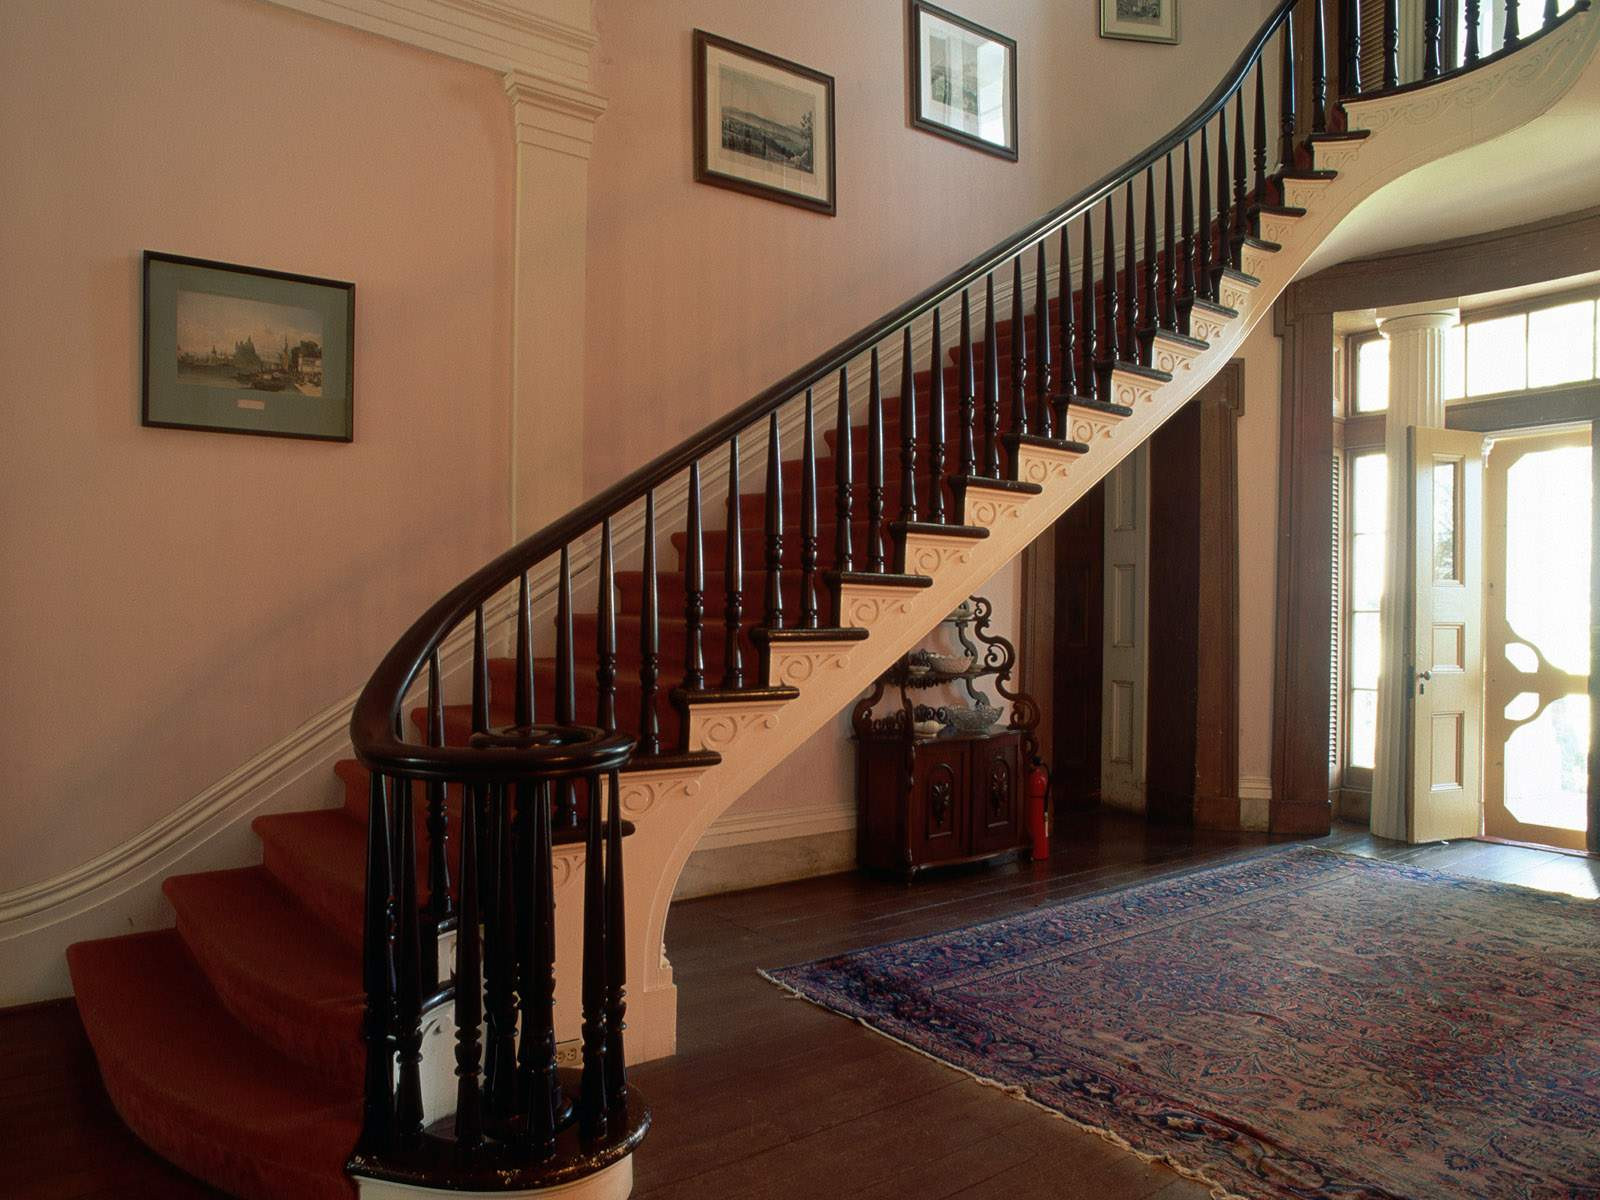 Best ideas about Indoor Stair Railings . Save or Pin All about Indoor Stair Railing Styles Now.